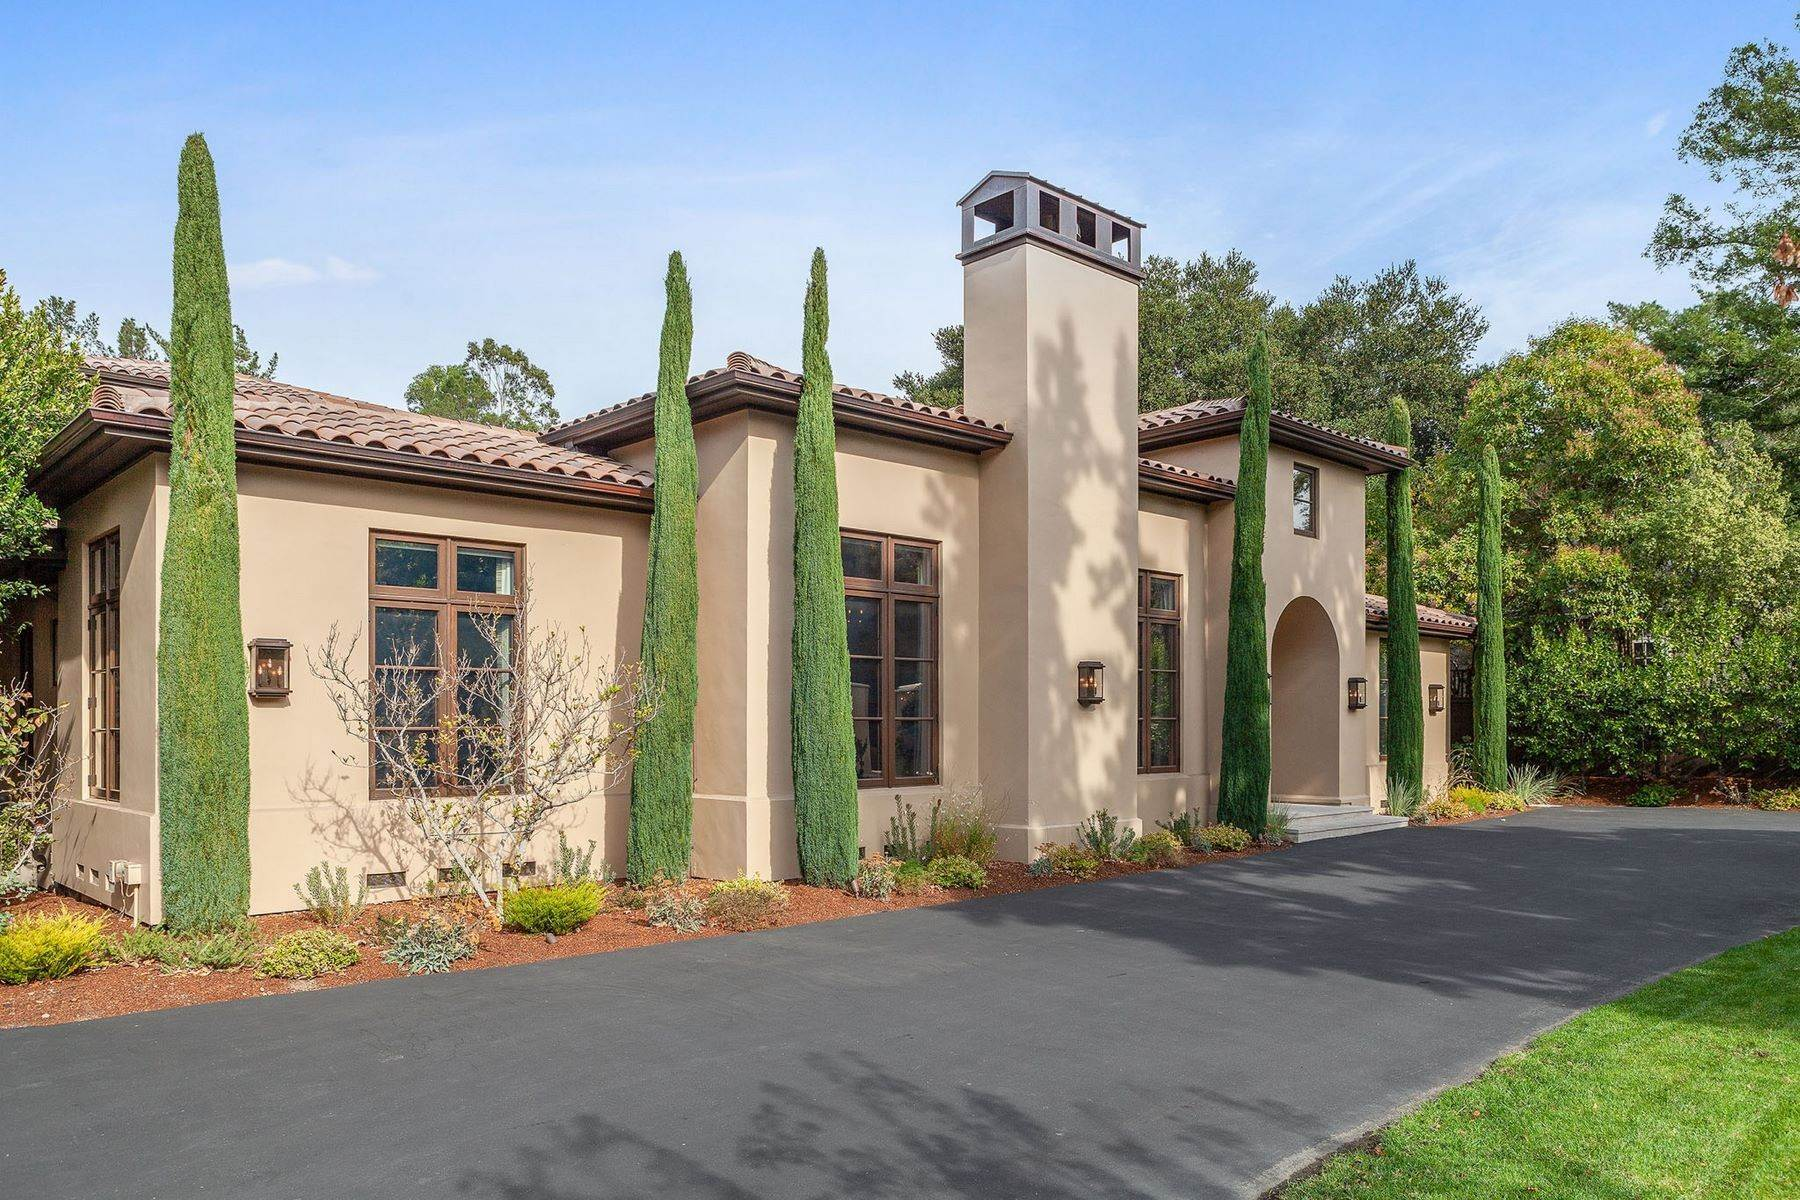 41. Single Family Homes for Sale at European Resort-Like Estate 109 Fawn Drive San Anselmo, California 94960 United States